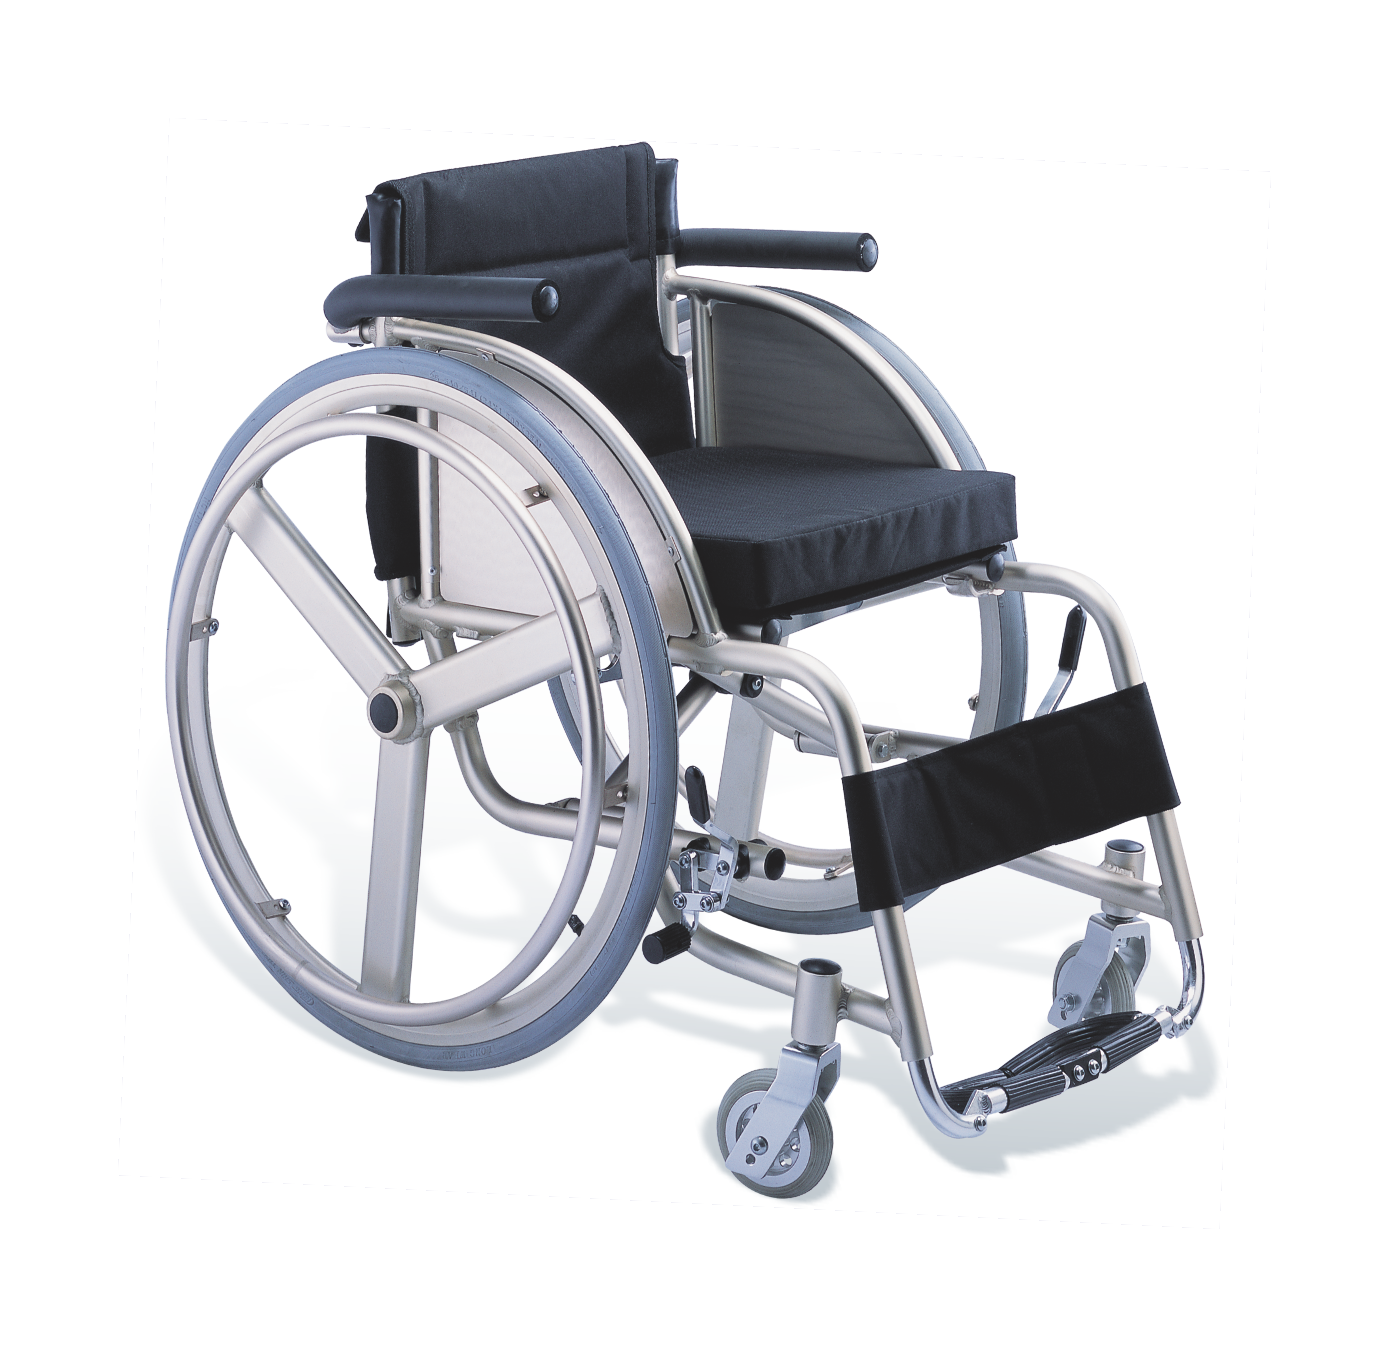 an analysis of the wheelchair as a mobility device for the people with disabilities Floor section of the car which makes for easy wheelchair and mobility device  boarding  translation and interpretation for limited english proficiency  individuals  auxiliary aids, services and/or alternative formats to persons with  disabilities.